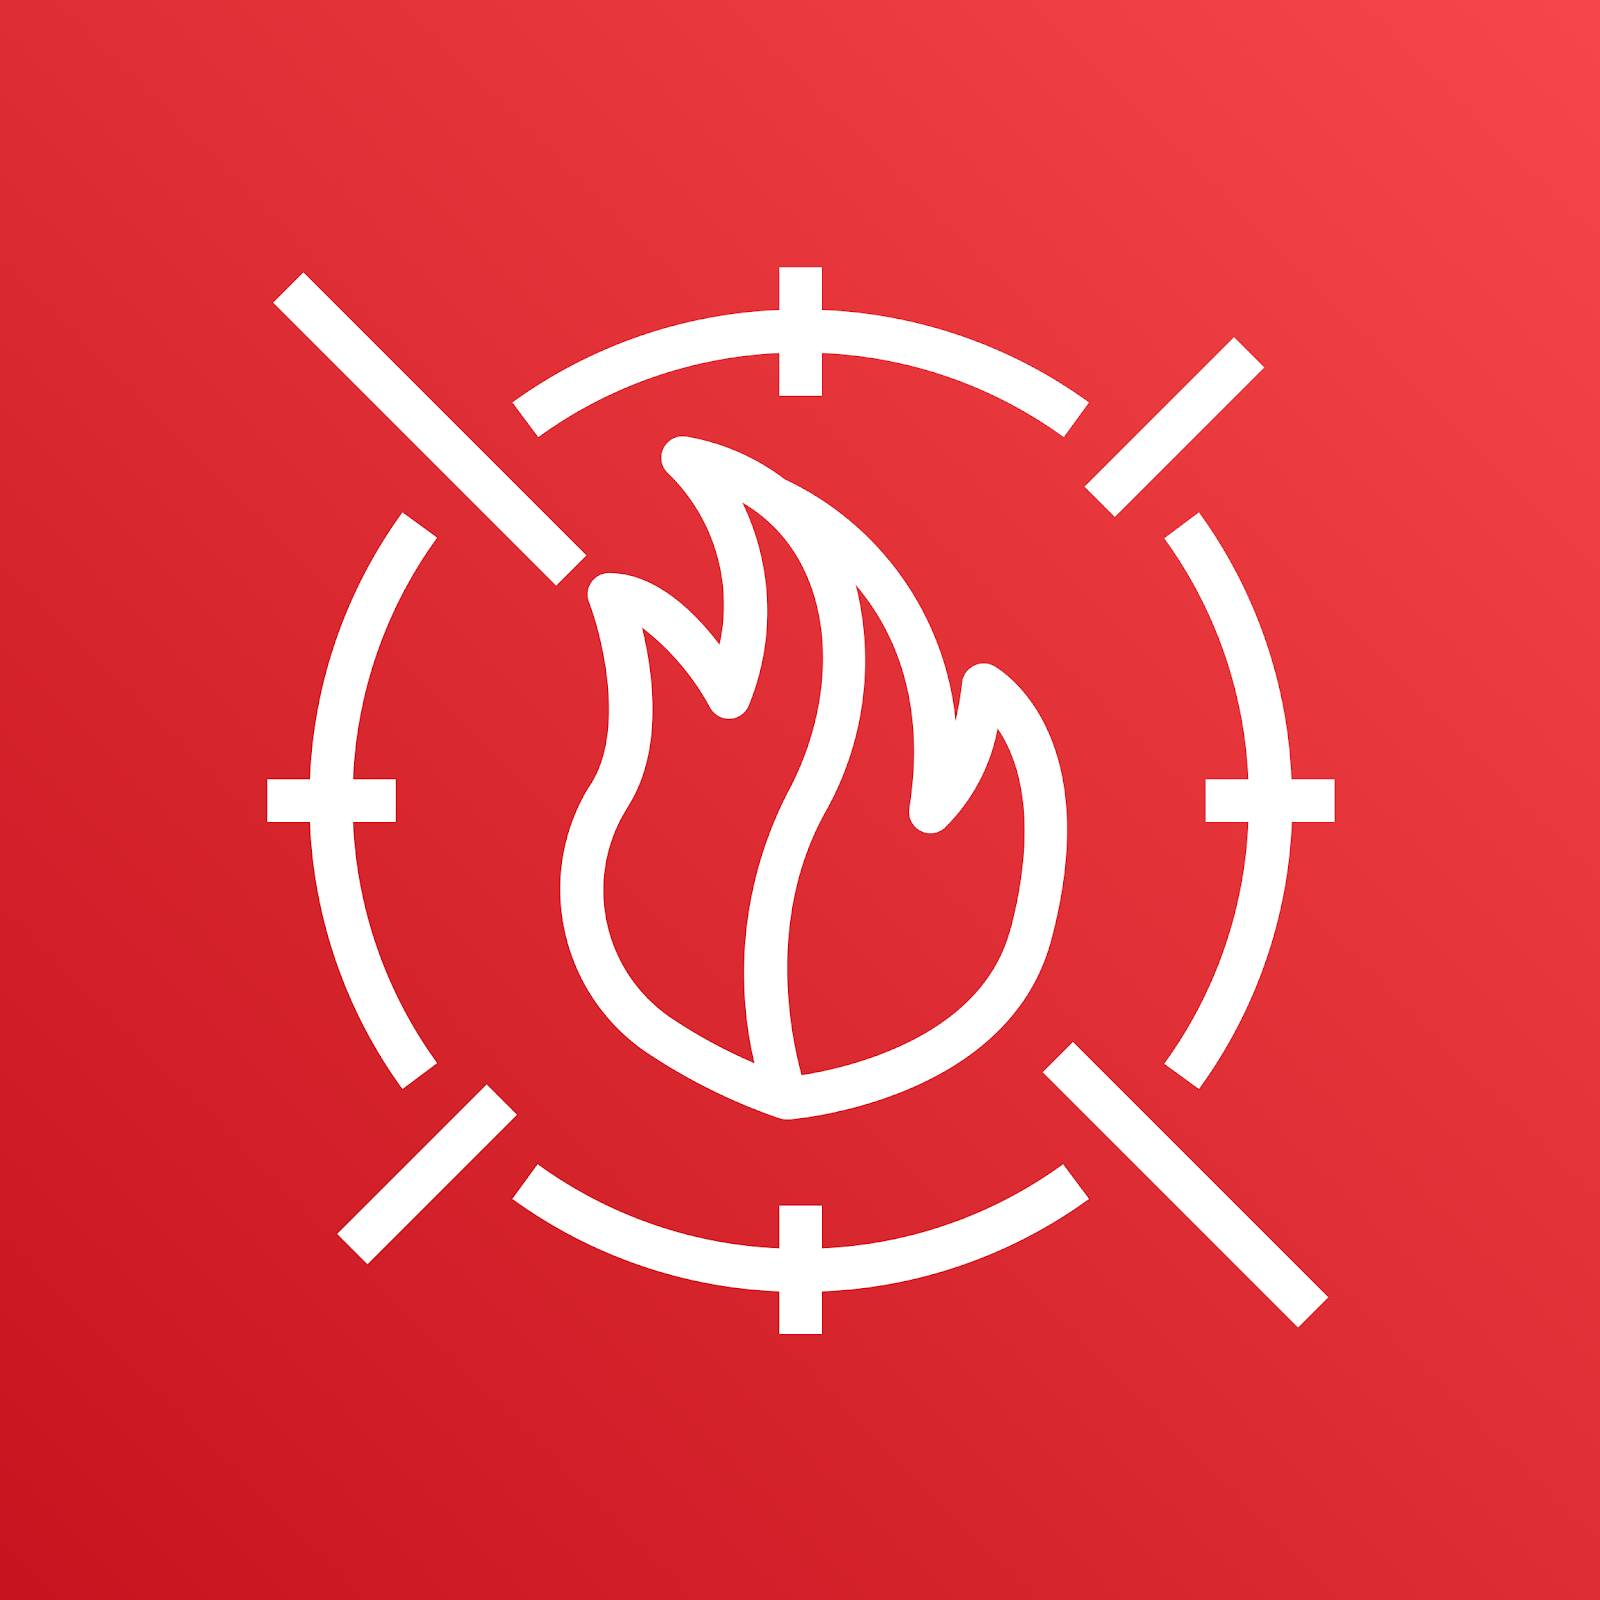 AWS WAF icon depicting a flame in the center of a circular target